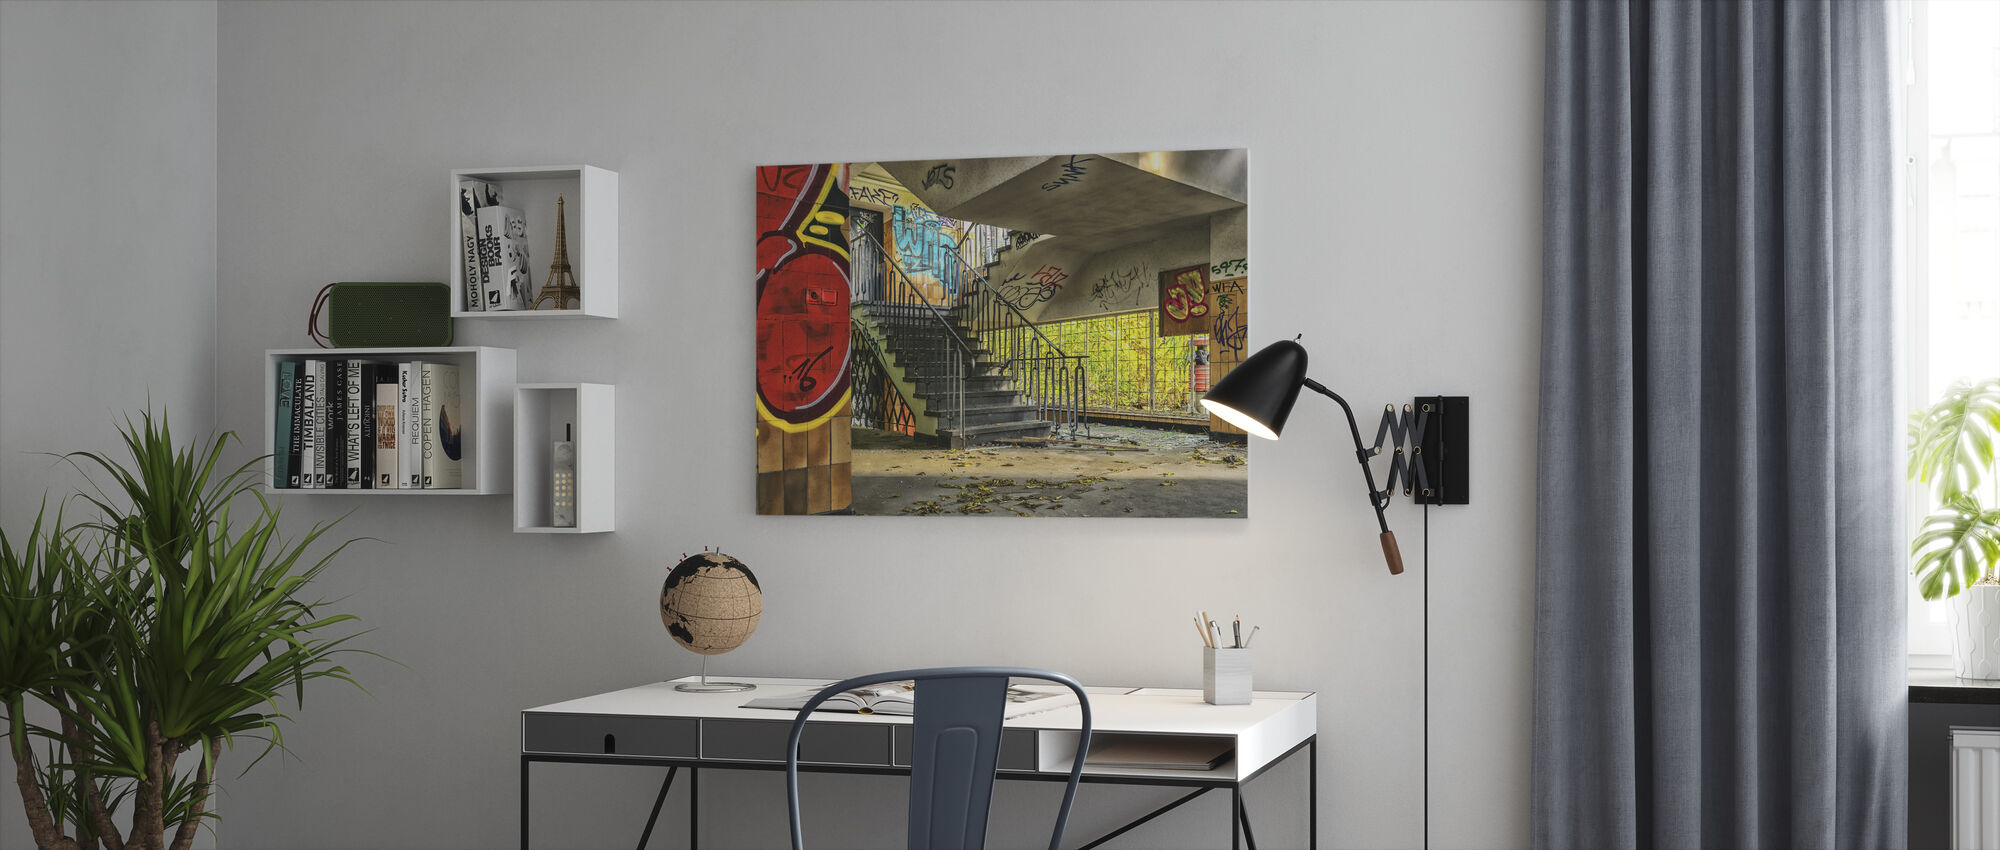 Staircase - Canvas print - Office